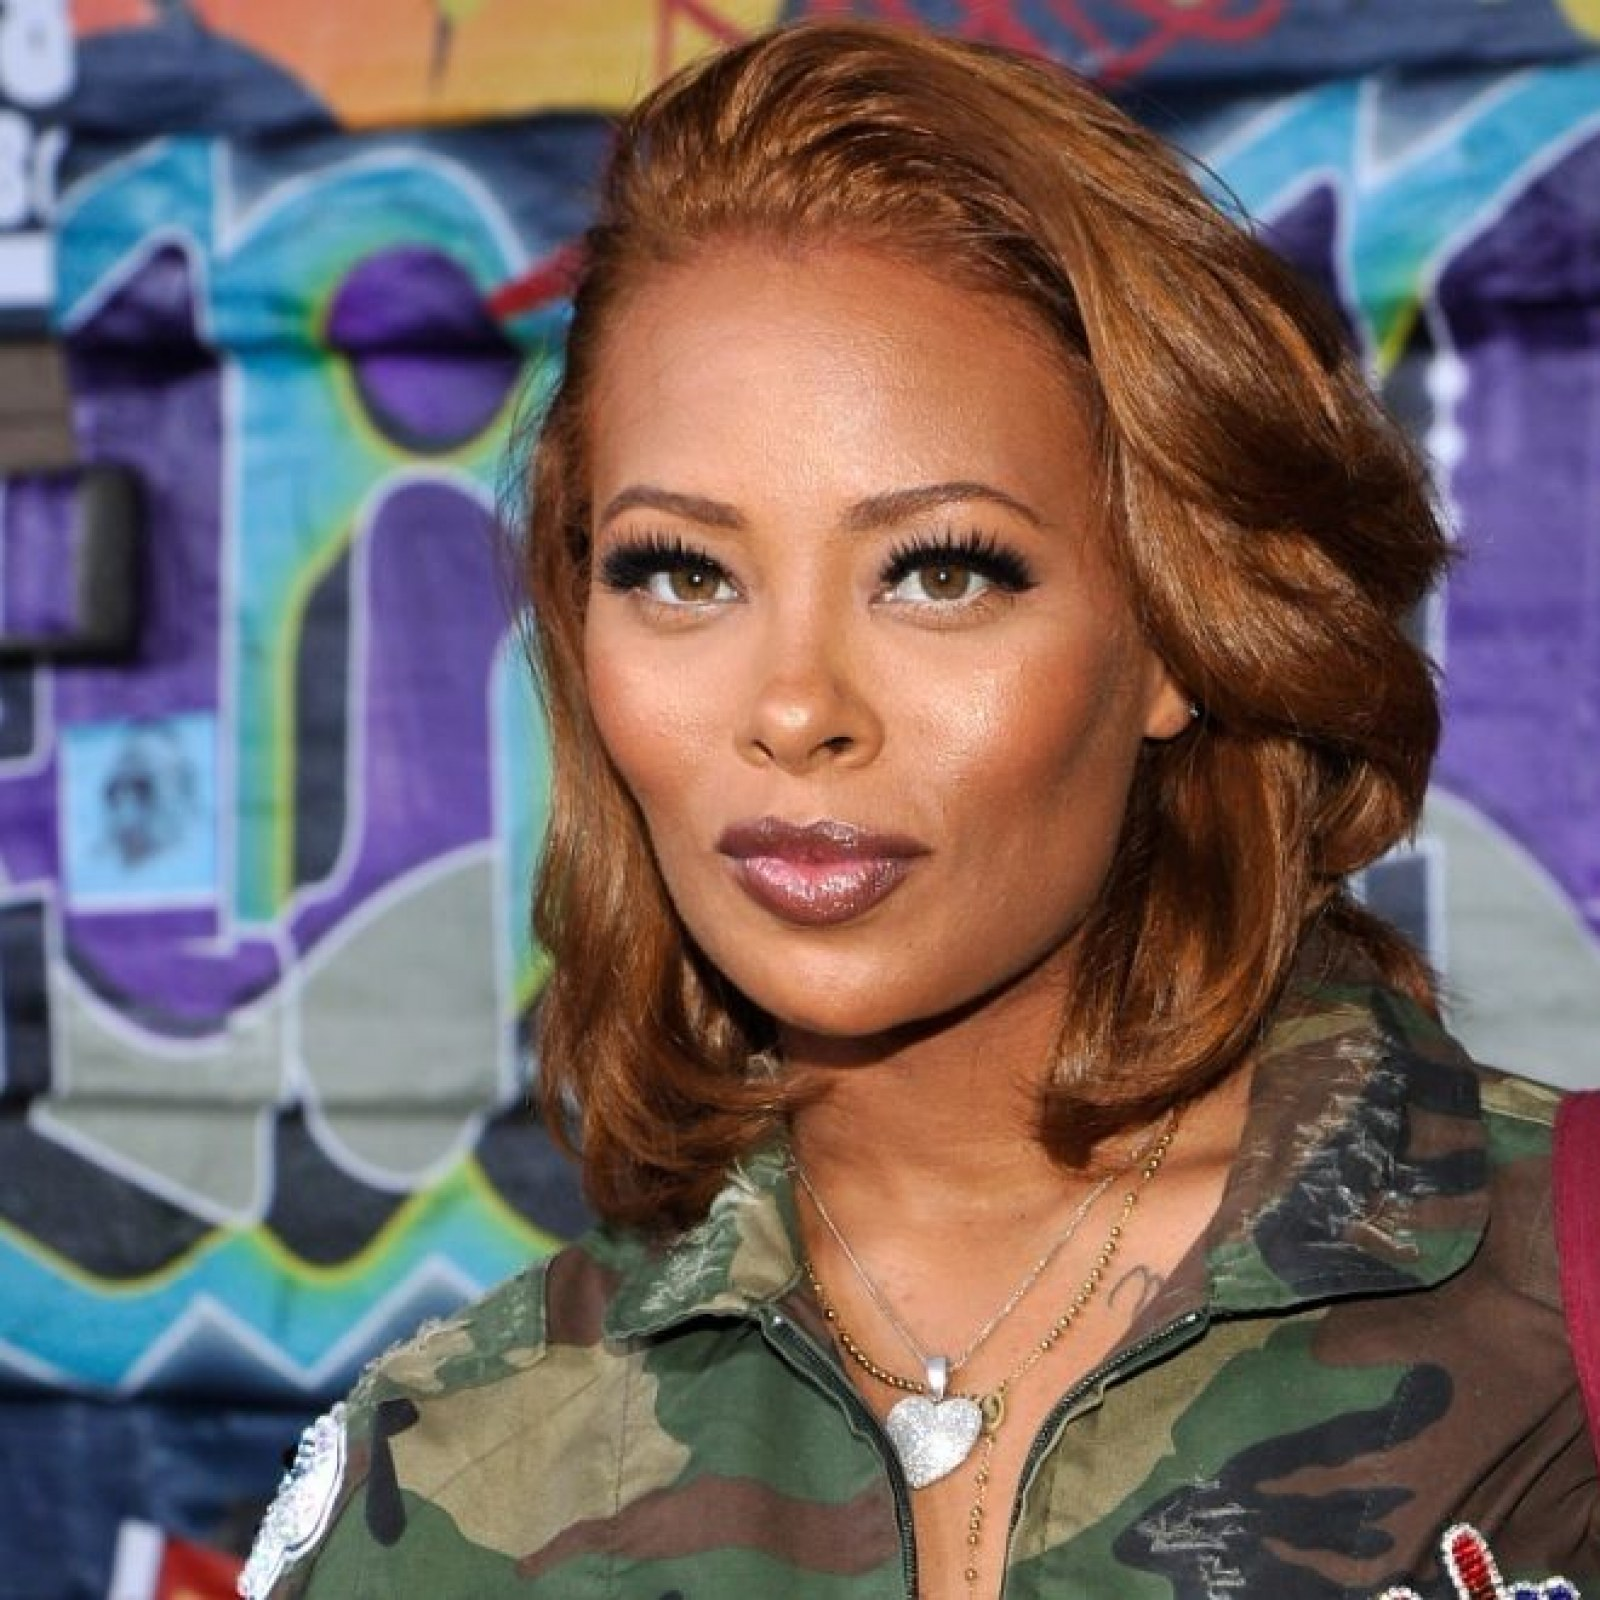 """eva-marcille-shares-footage-from-a-photo-shoot-and-has-fans-praising-her-skills"""